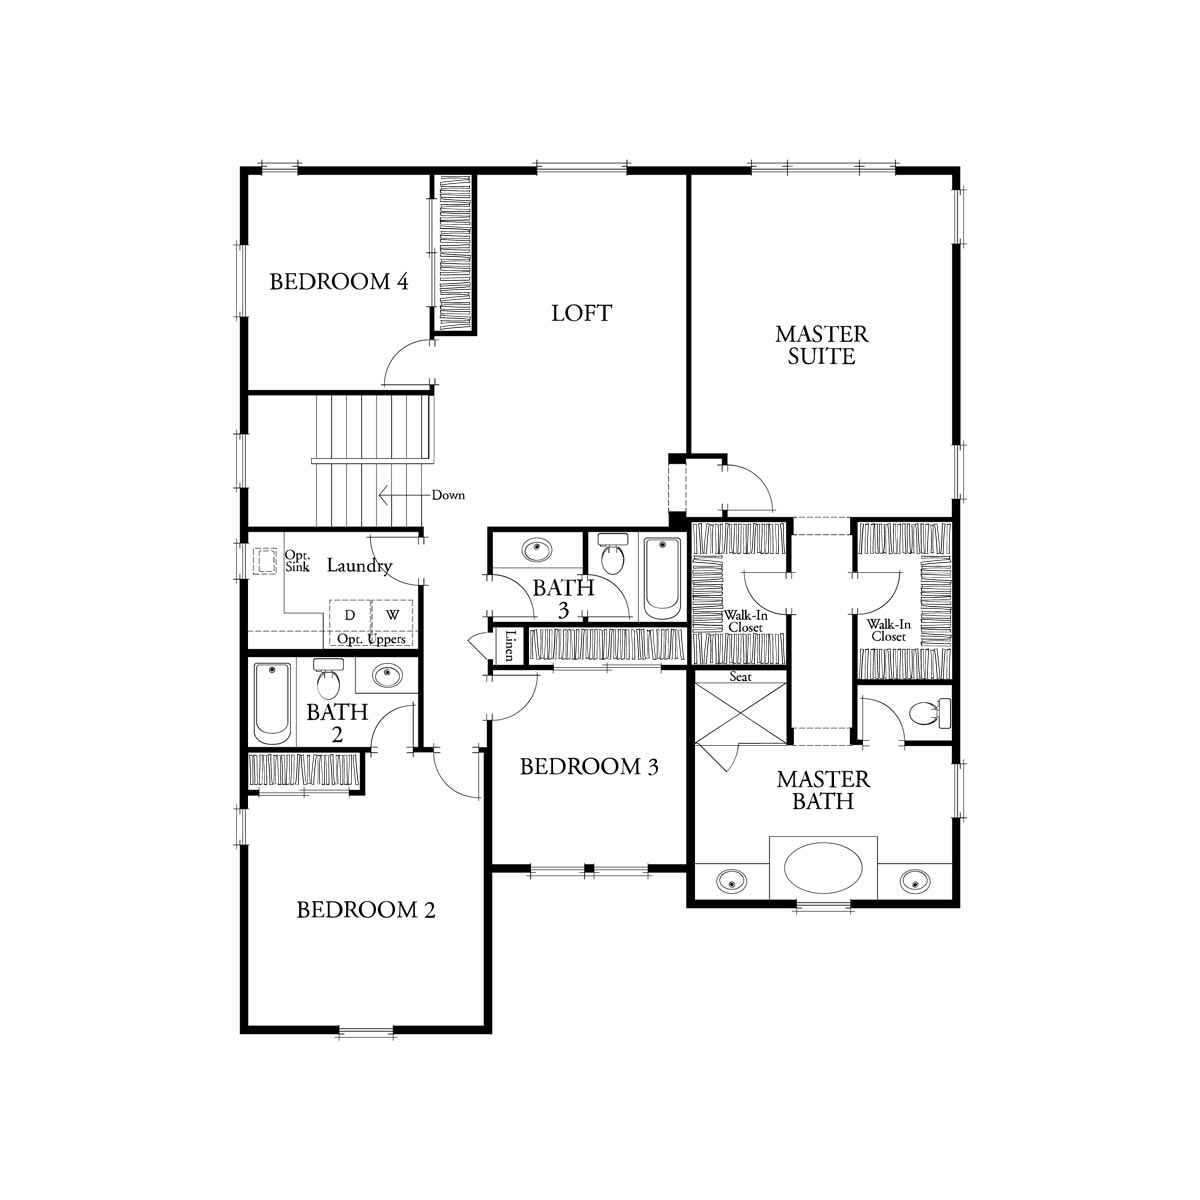 Residence 3 floor 2 plan | Citrus at Emerson Ranch in Oakley, CA | Brookfield Residential